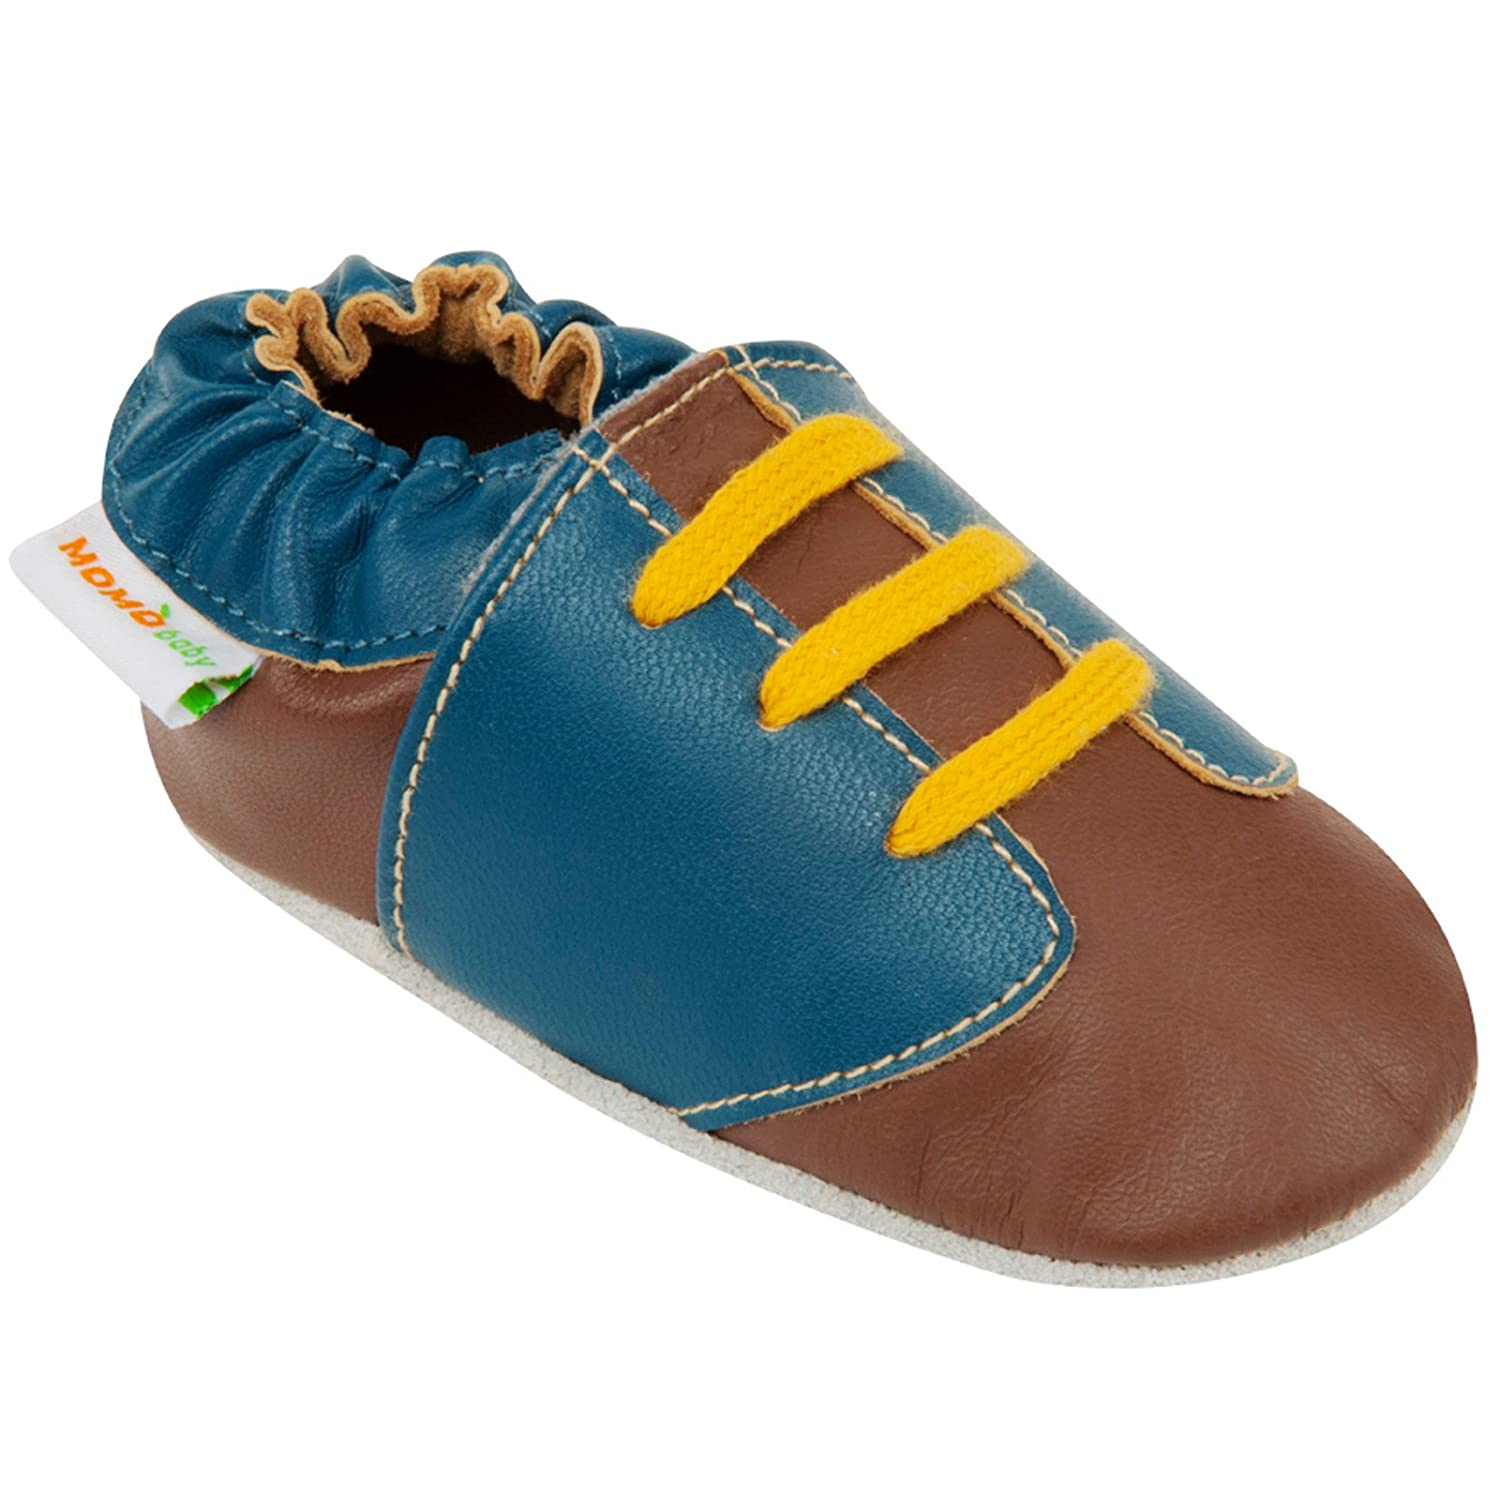 0-6 Months Momo Baby Boys Soft Sole Leather Shoes Sneaker